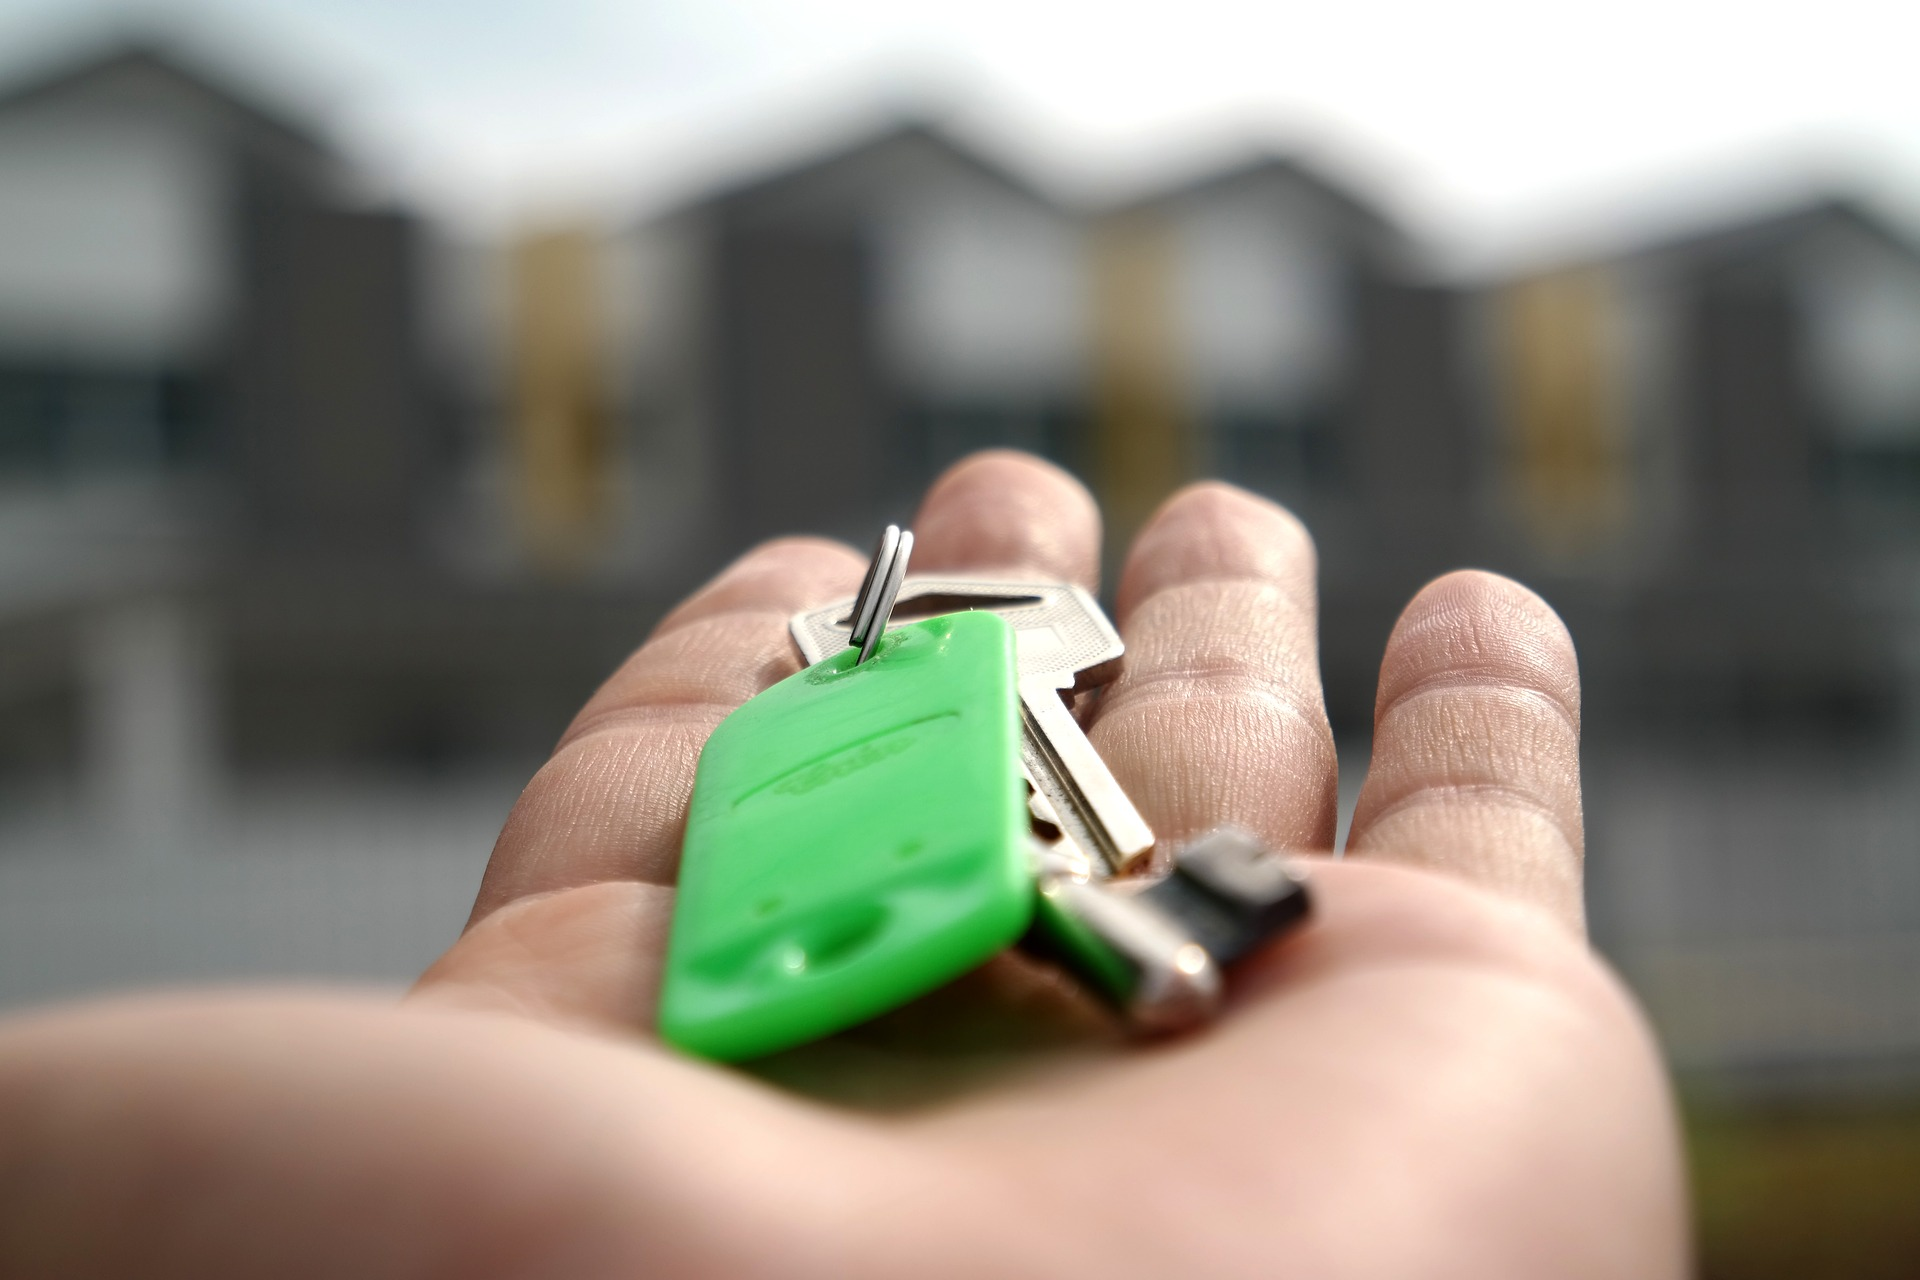 house keys in palm of hand